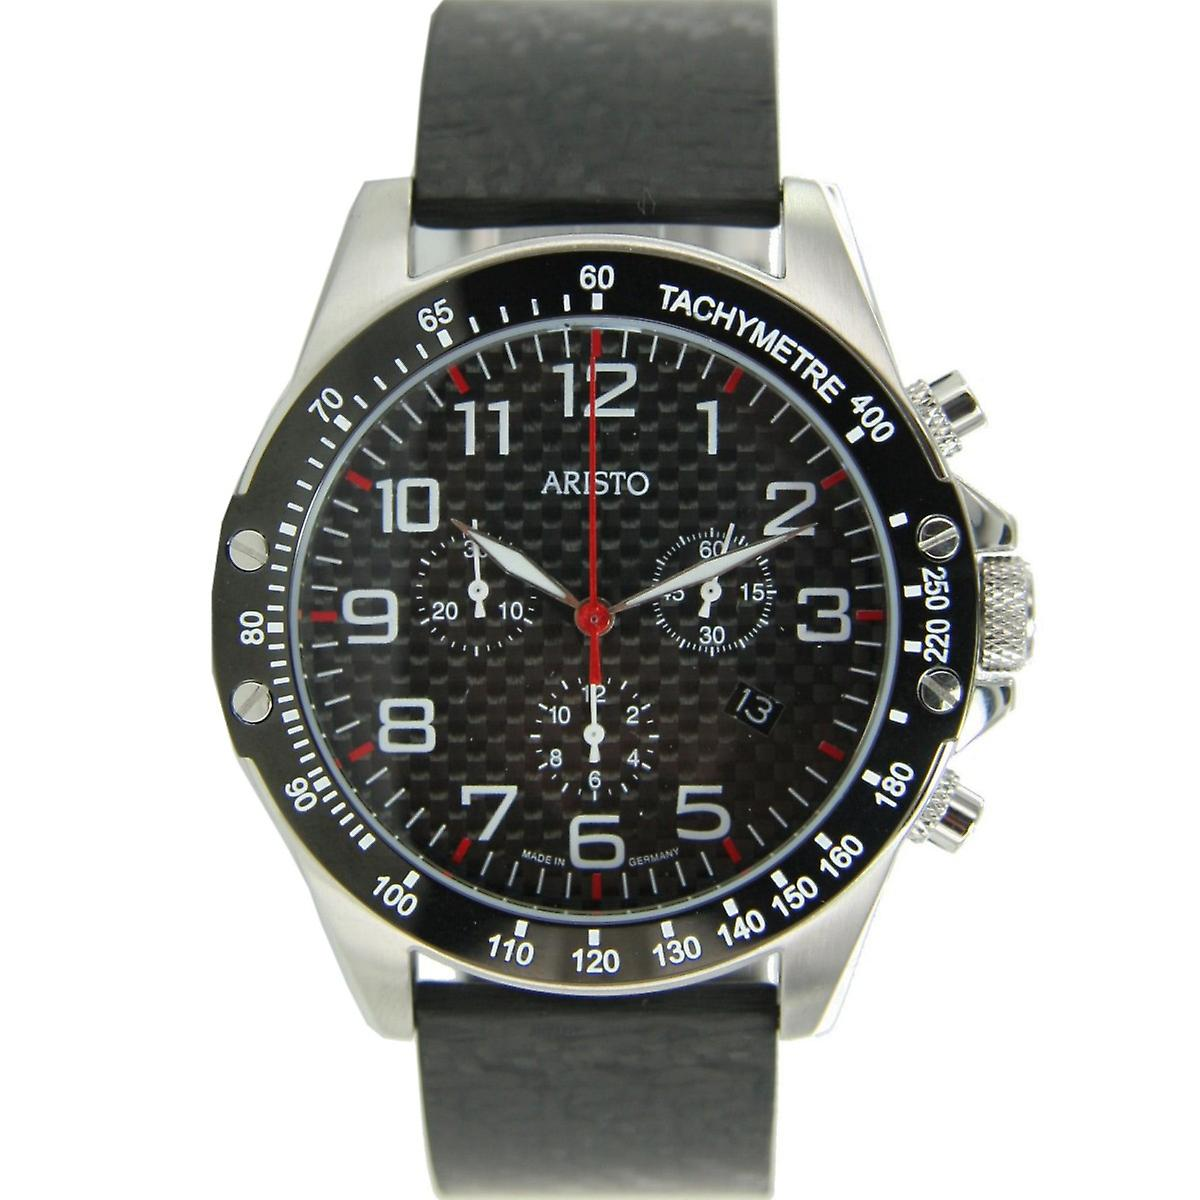 Aristo mens watch Chronograph Carbon stainless steel trophy buckle 4 H 157